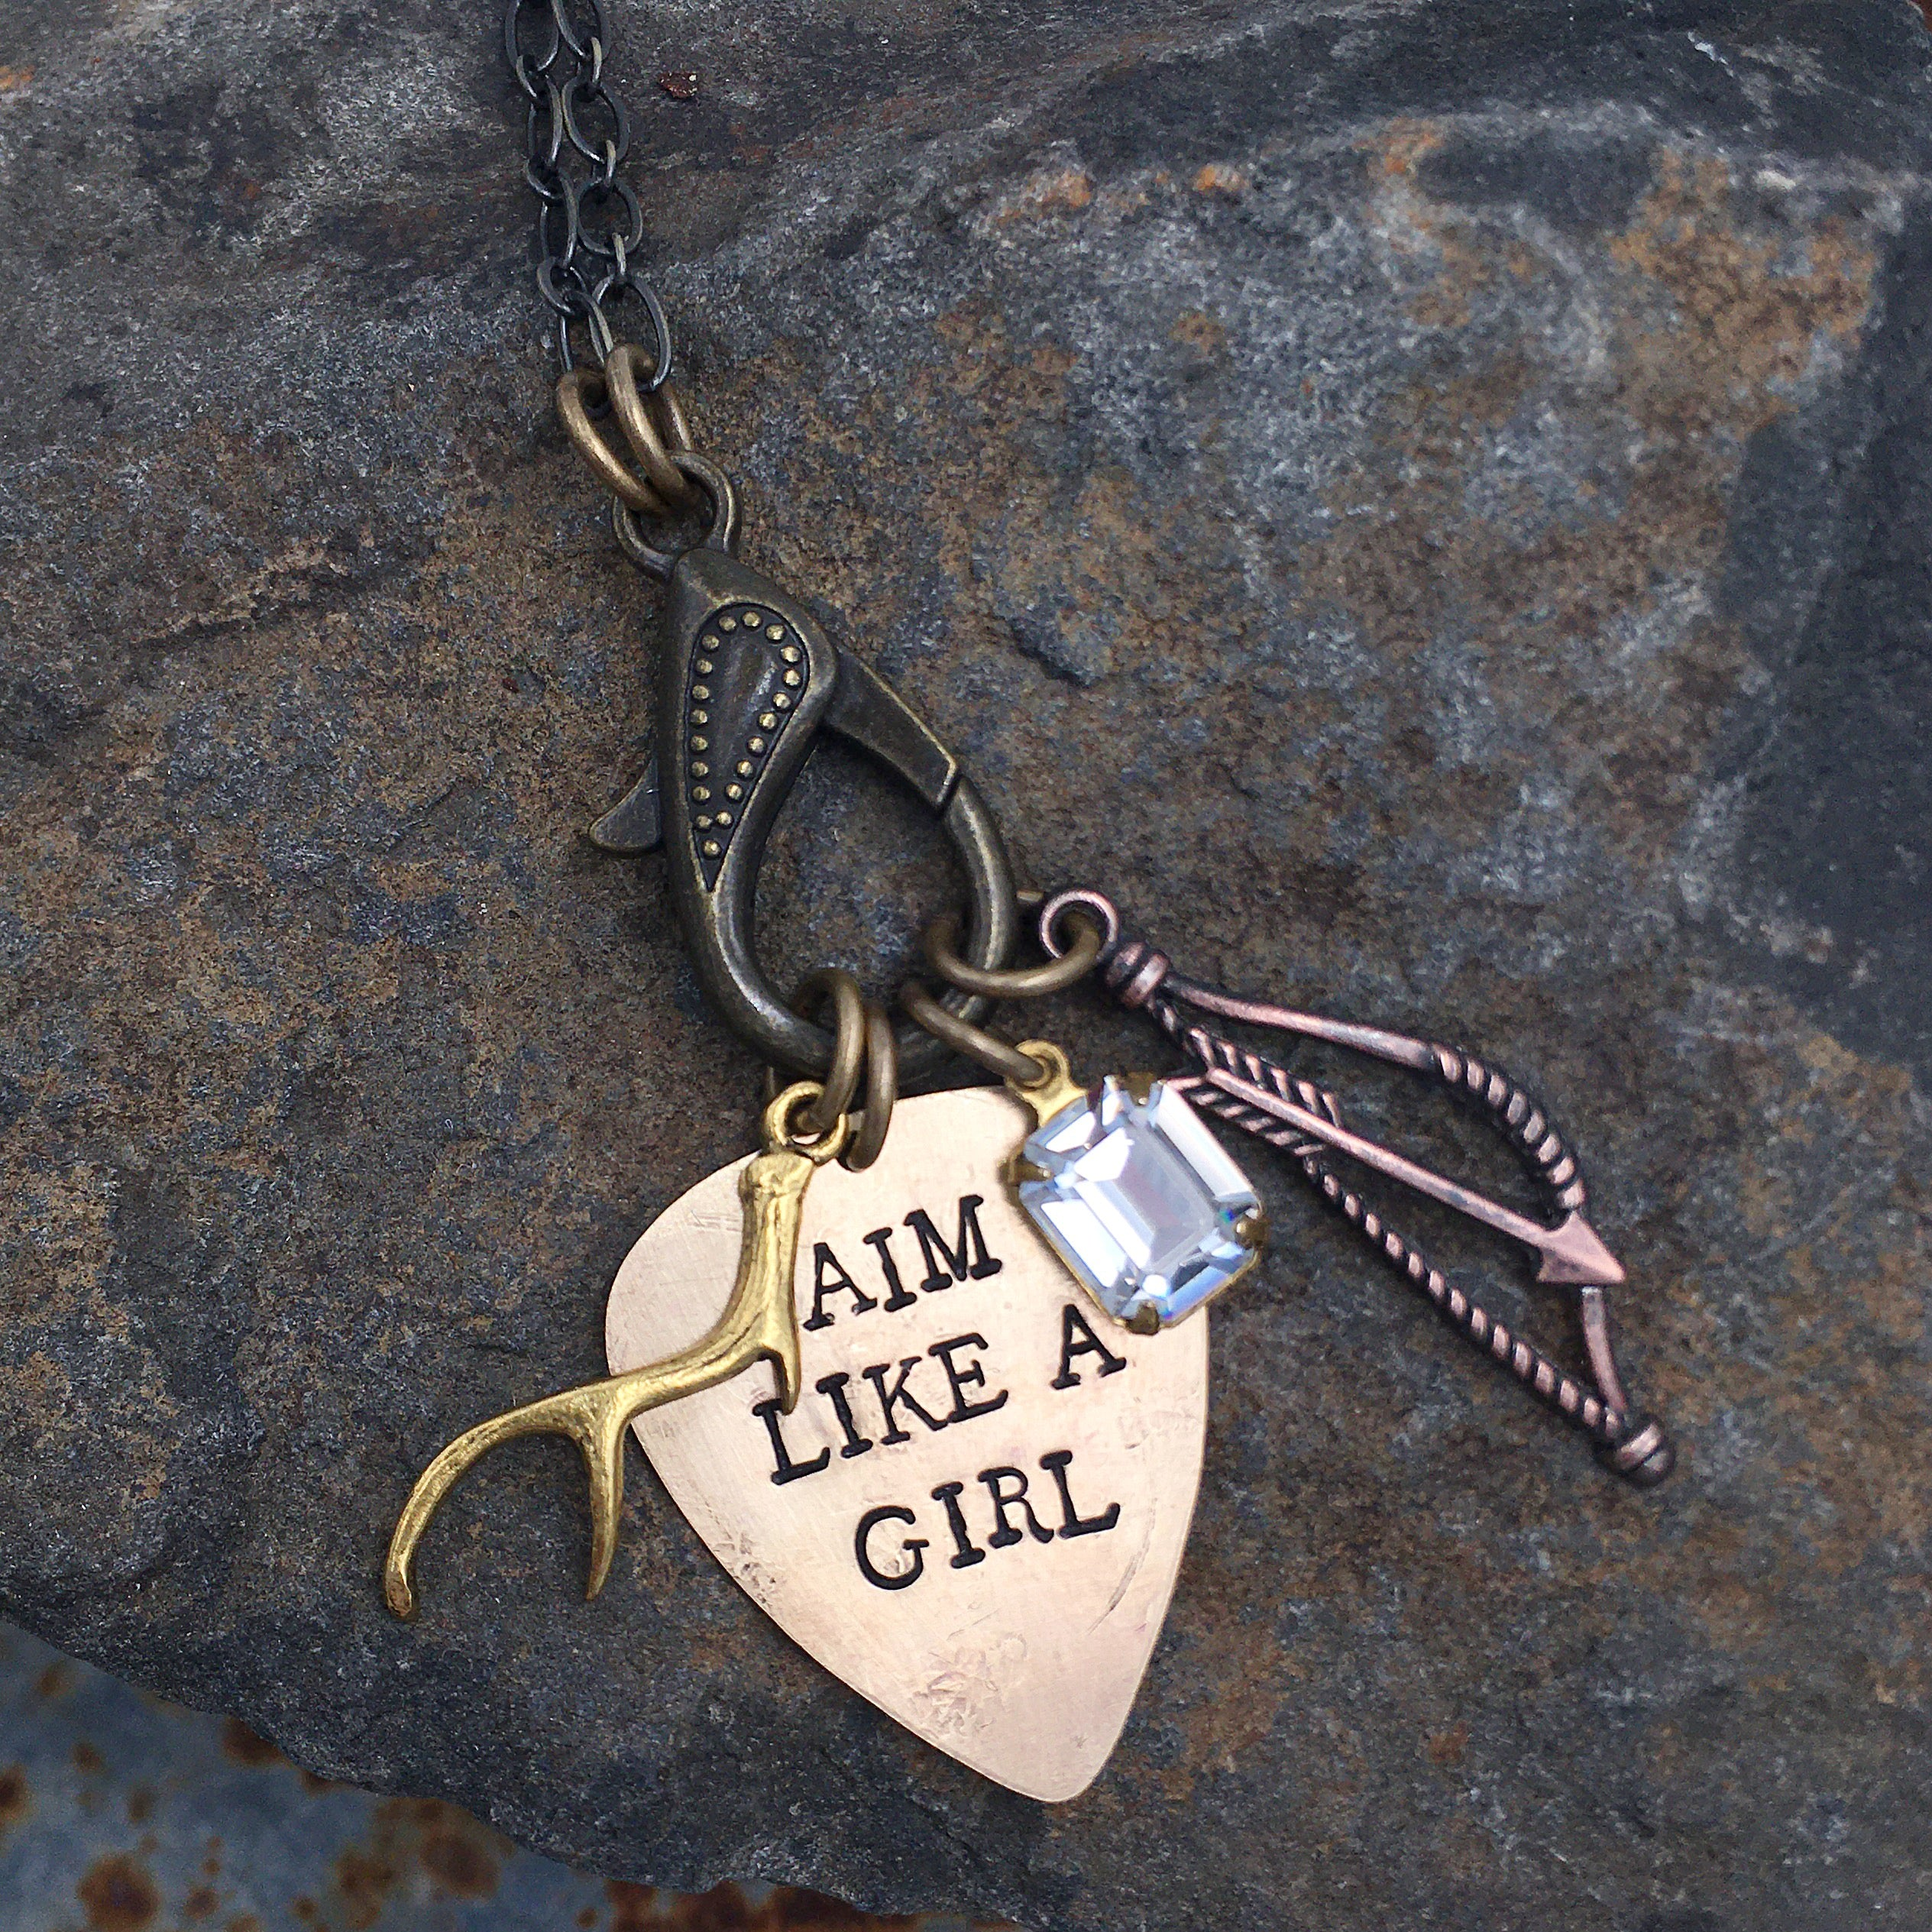 Aim Like a Girl® Treasure Necklace